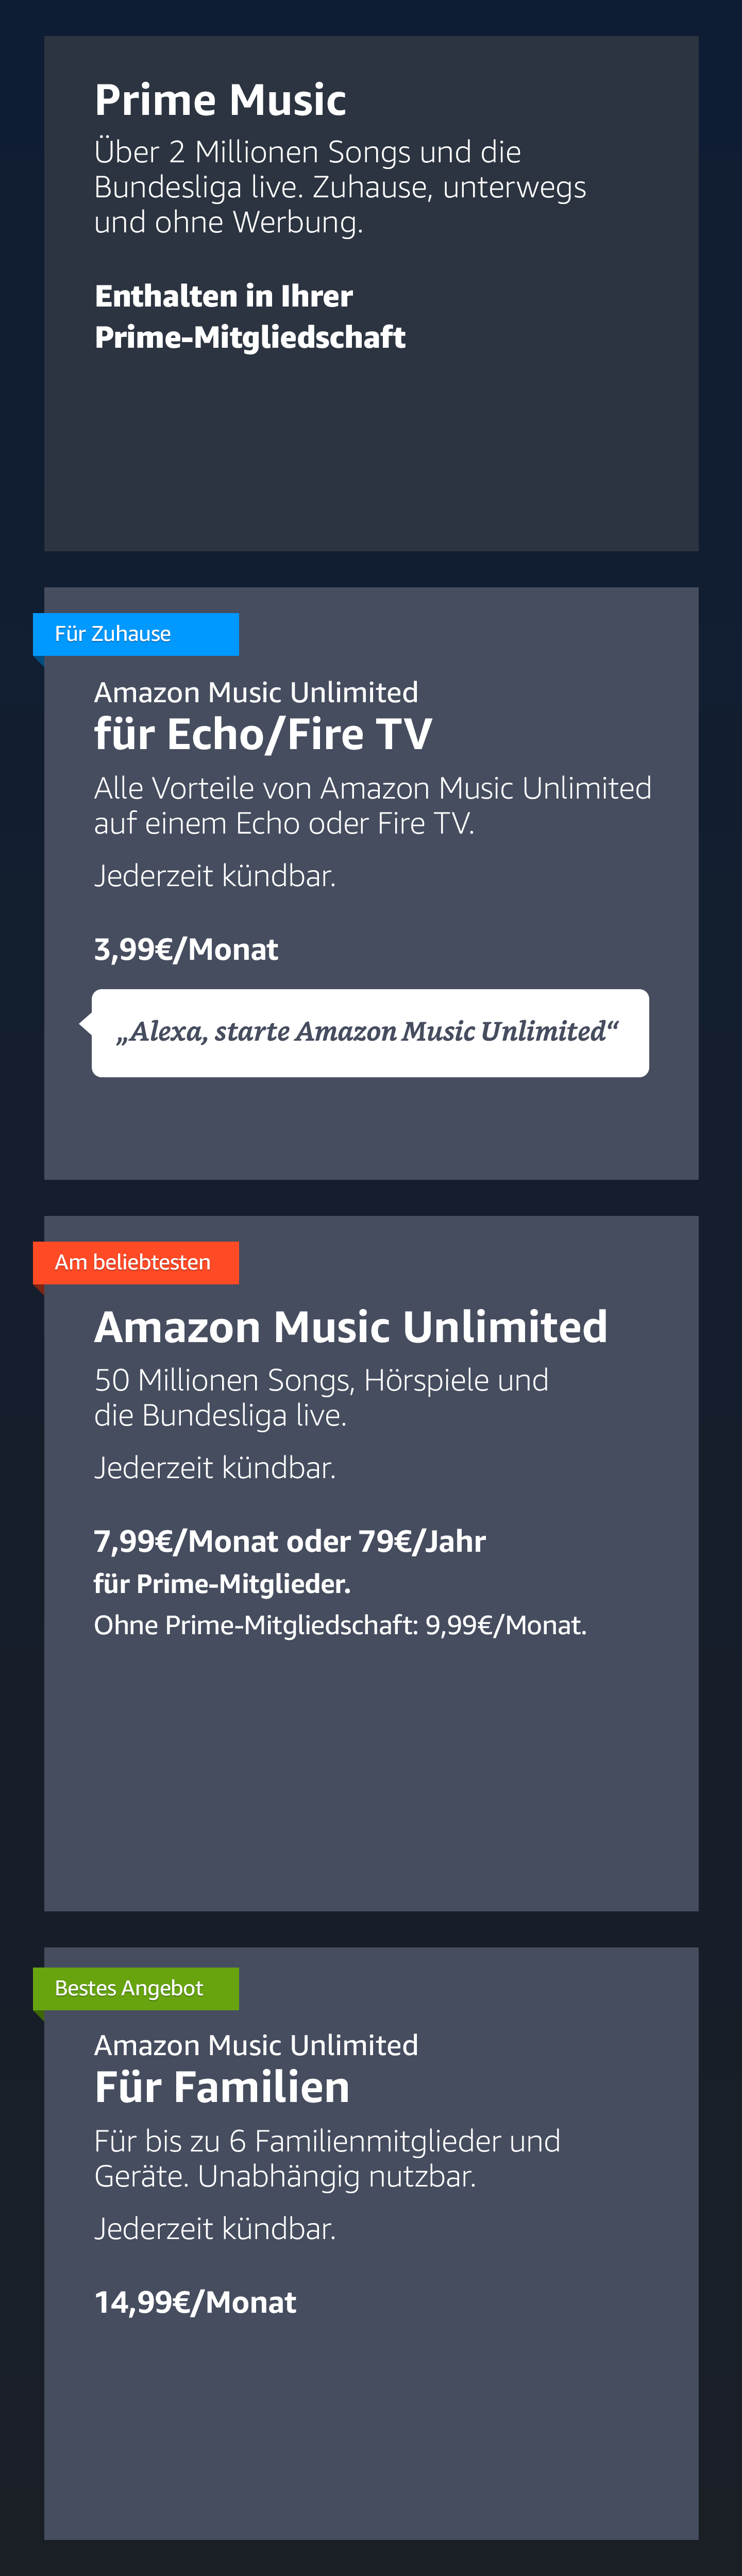 Amazon Music Unlimited für Familien